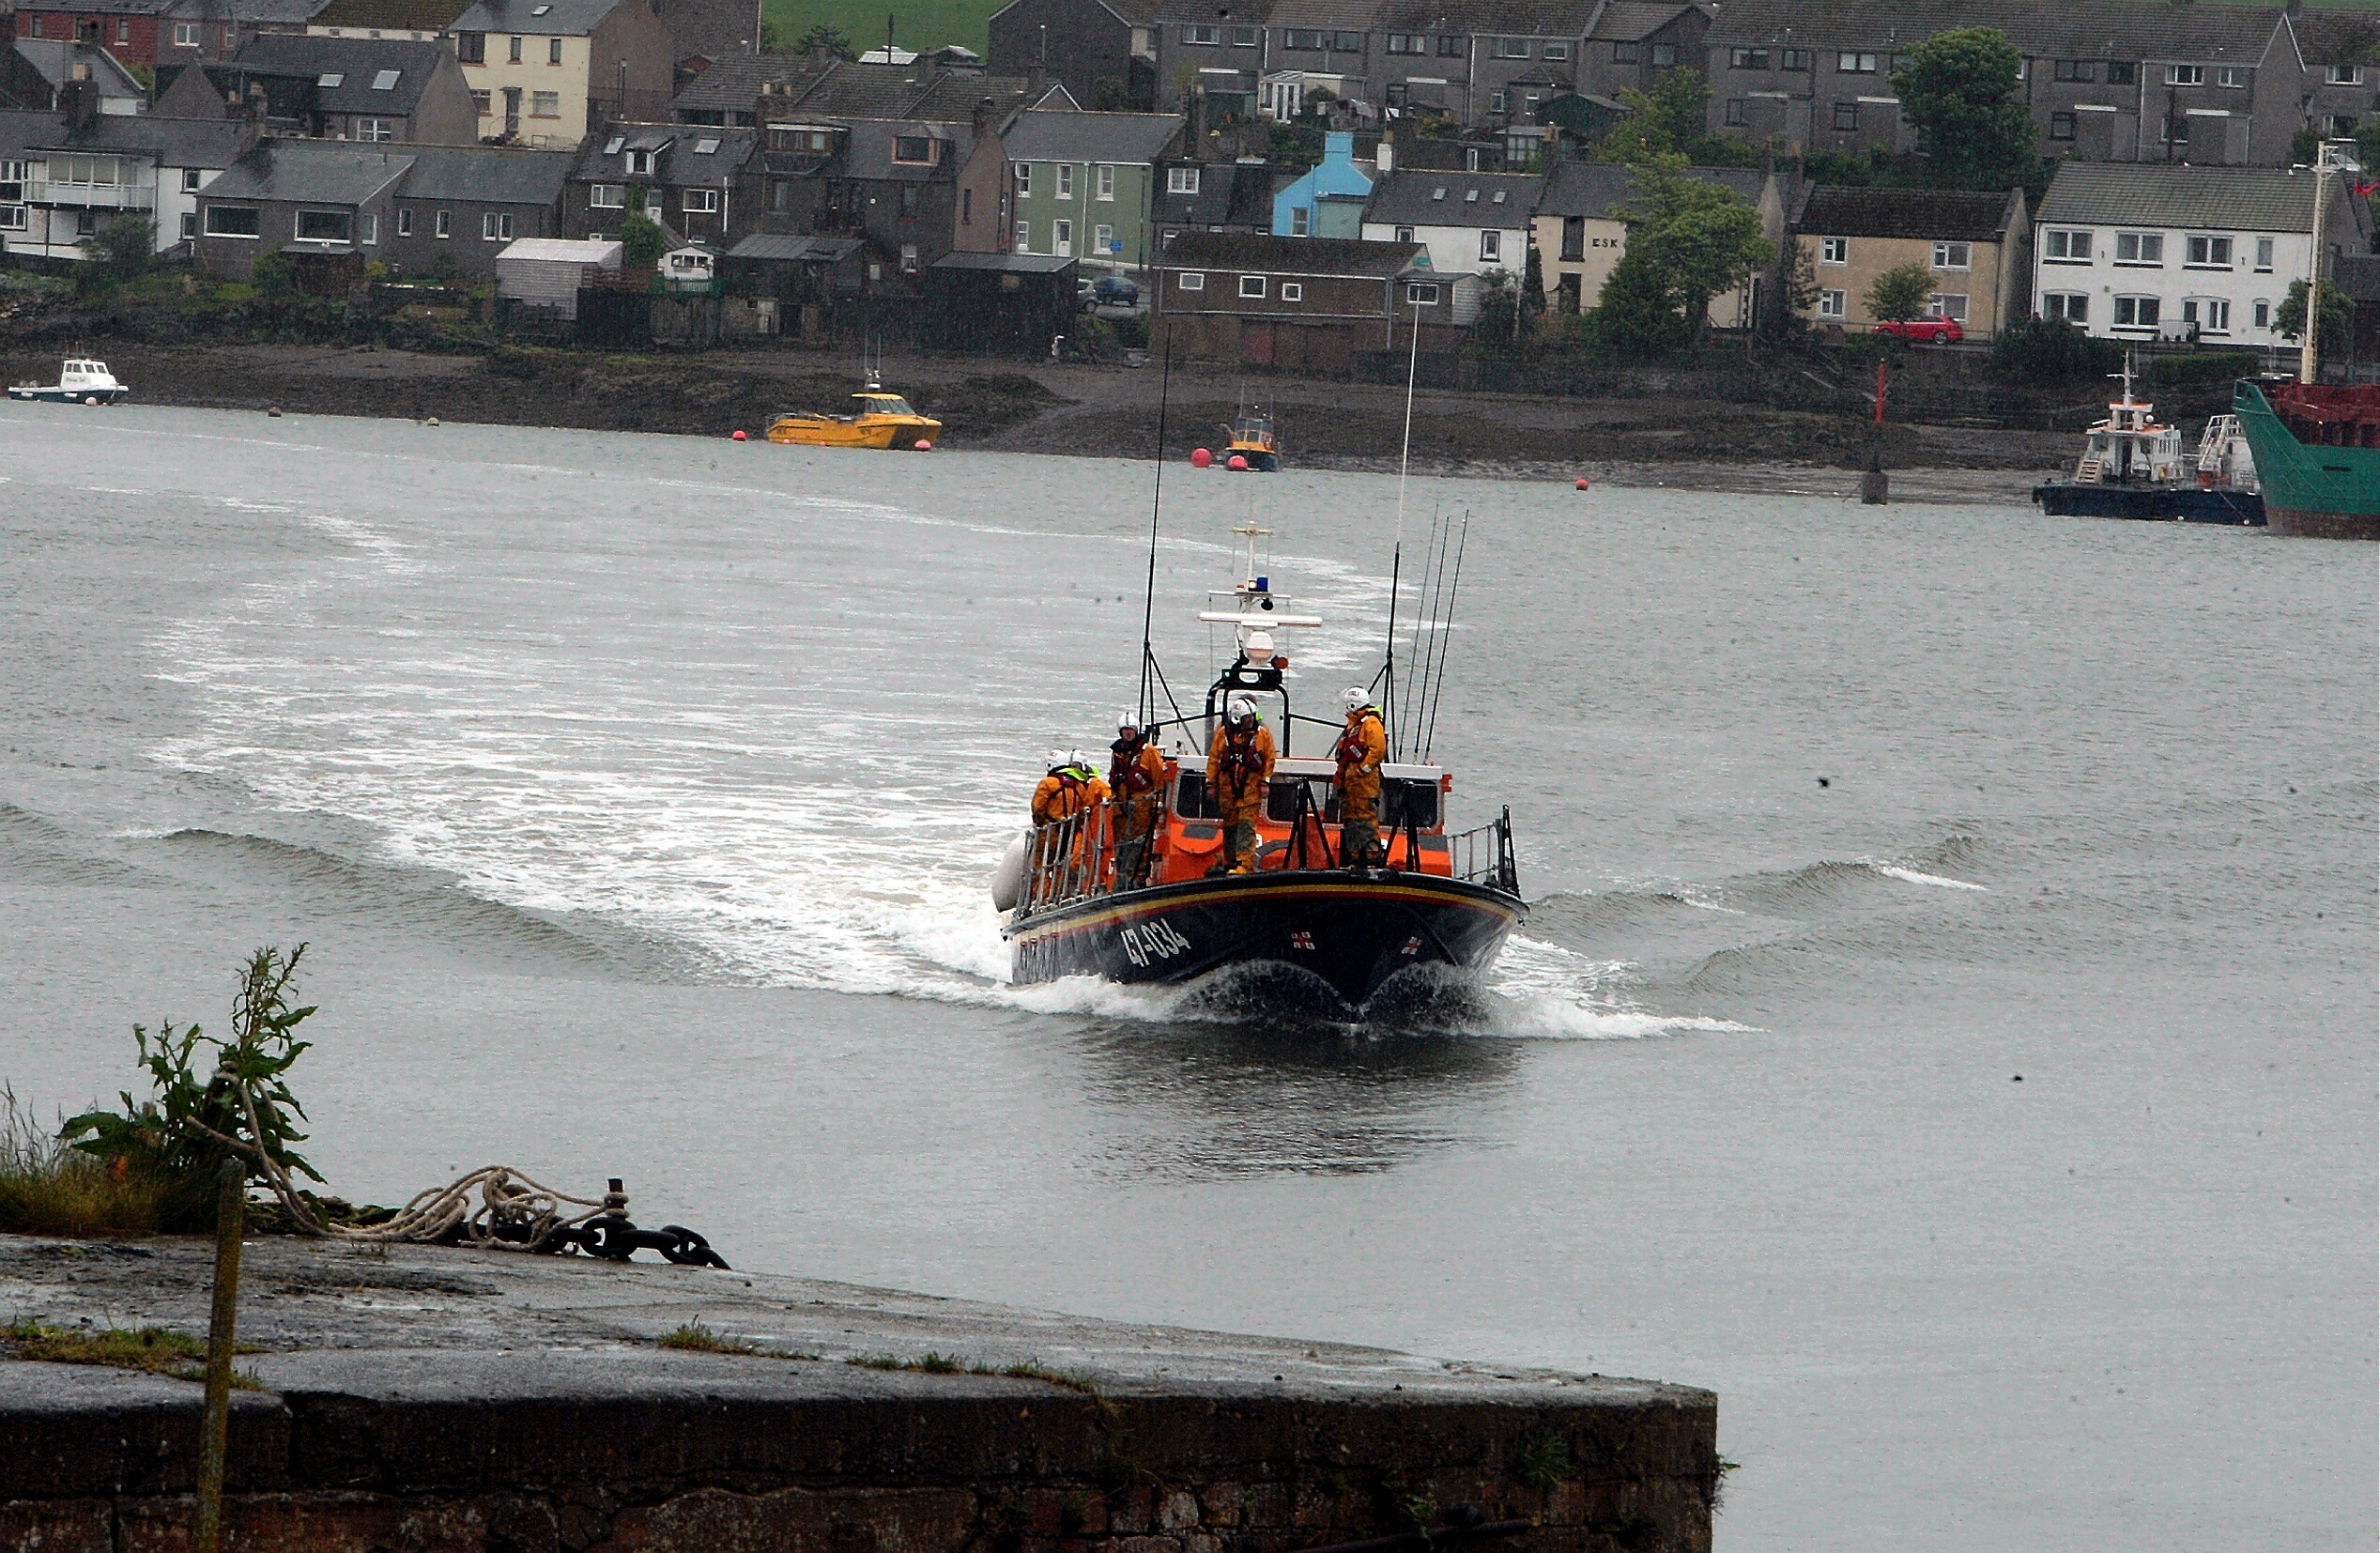 The Montrose RNLI.